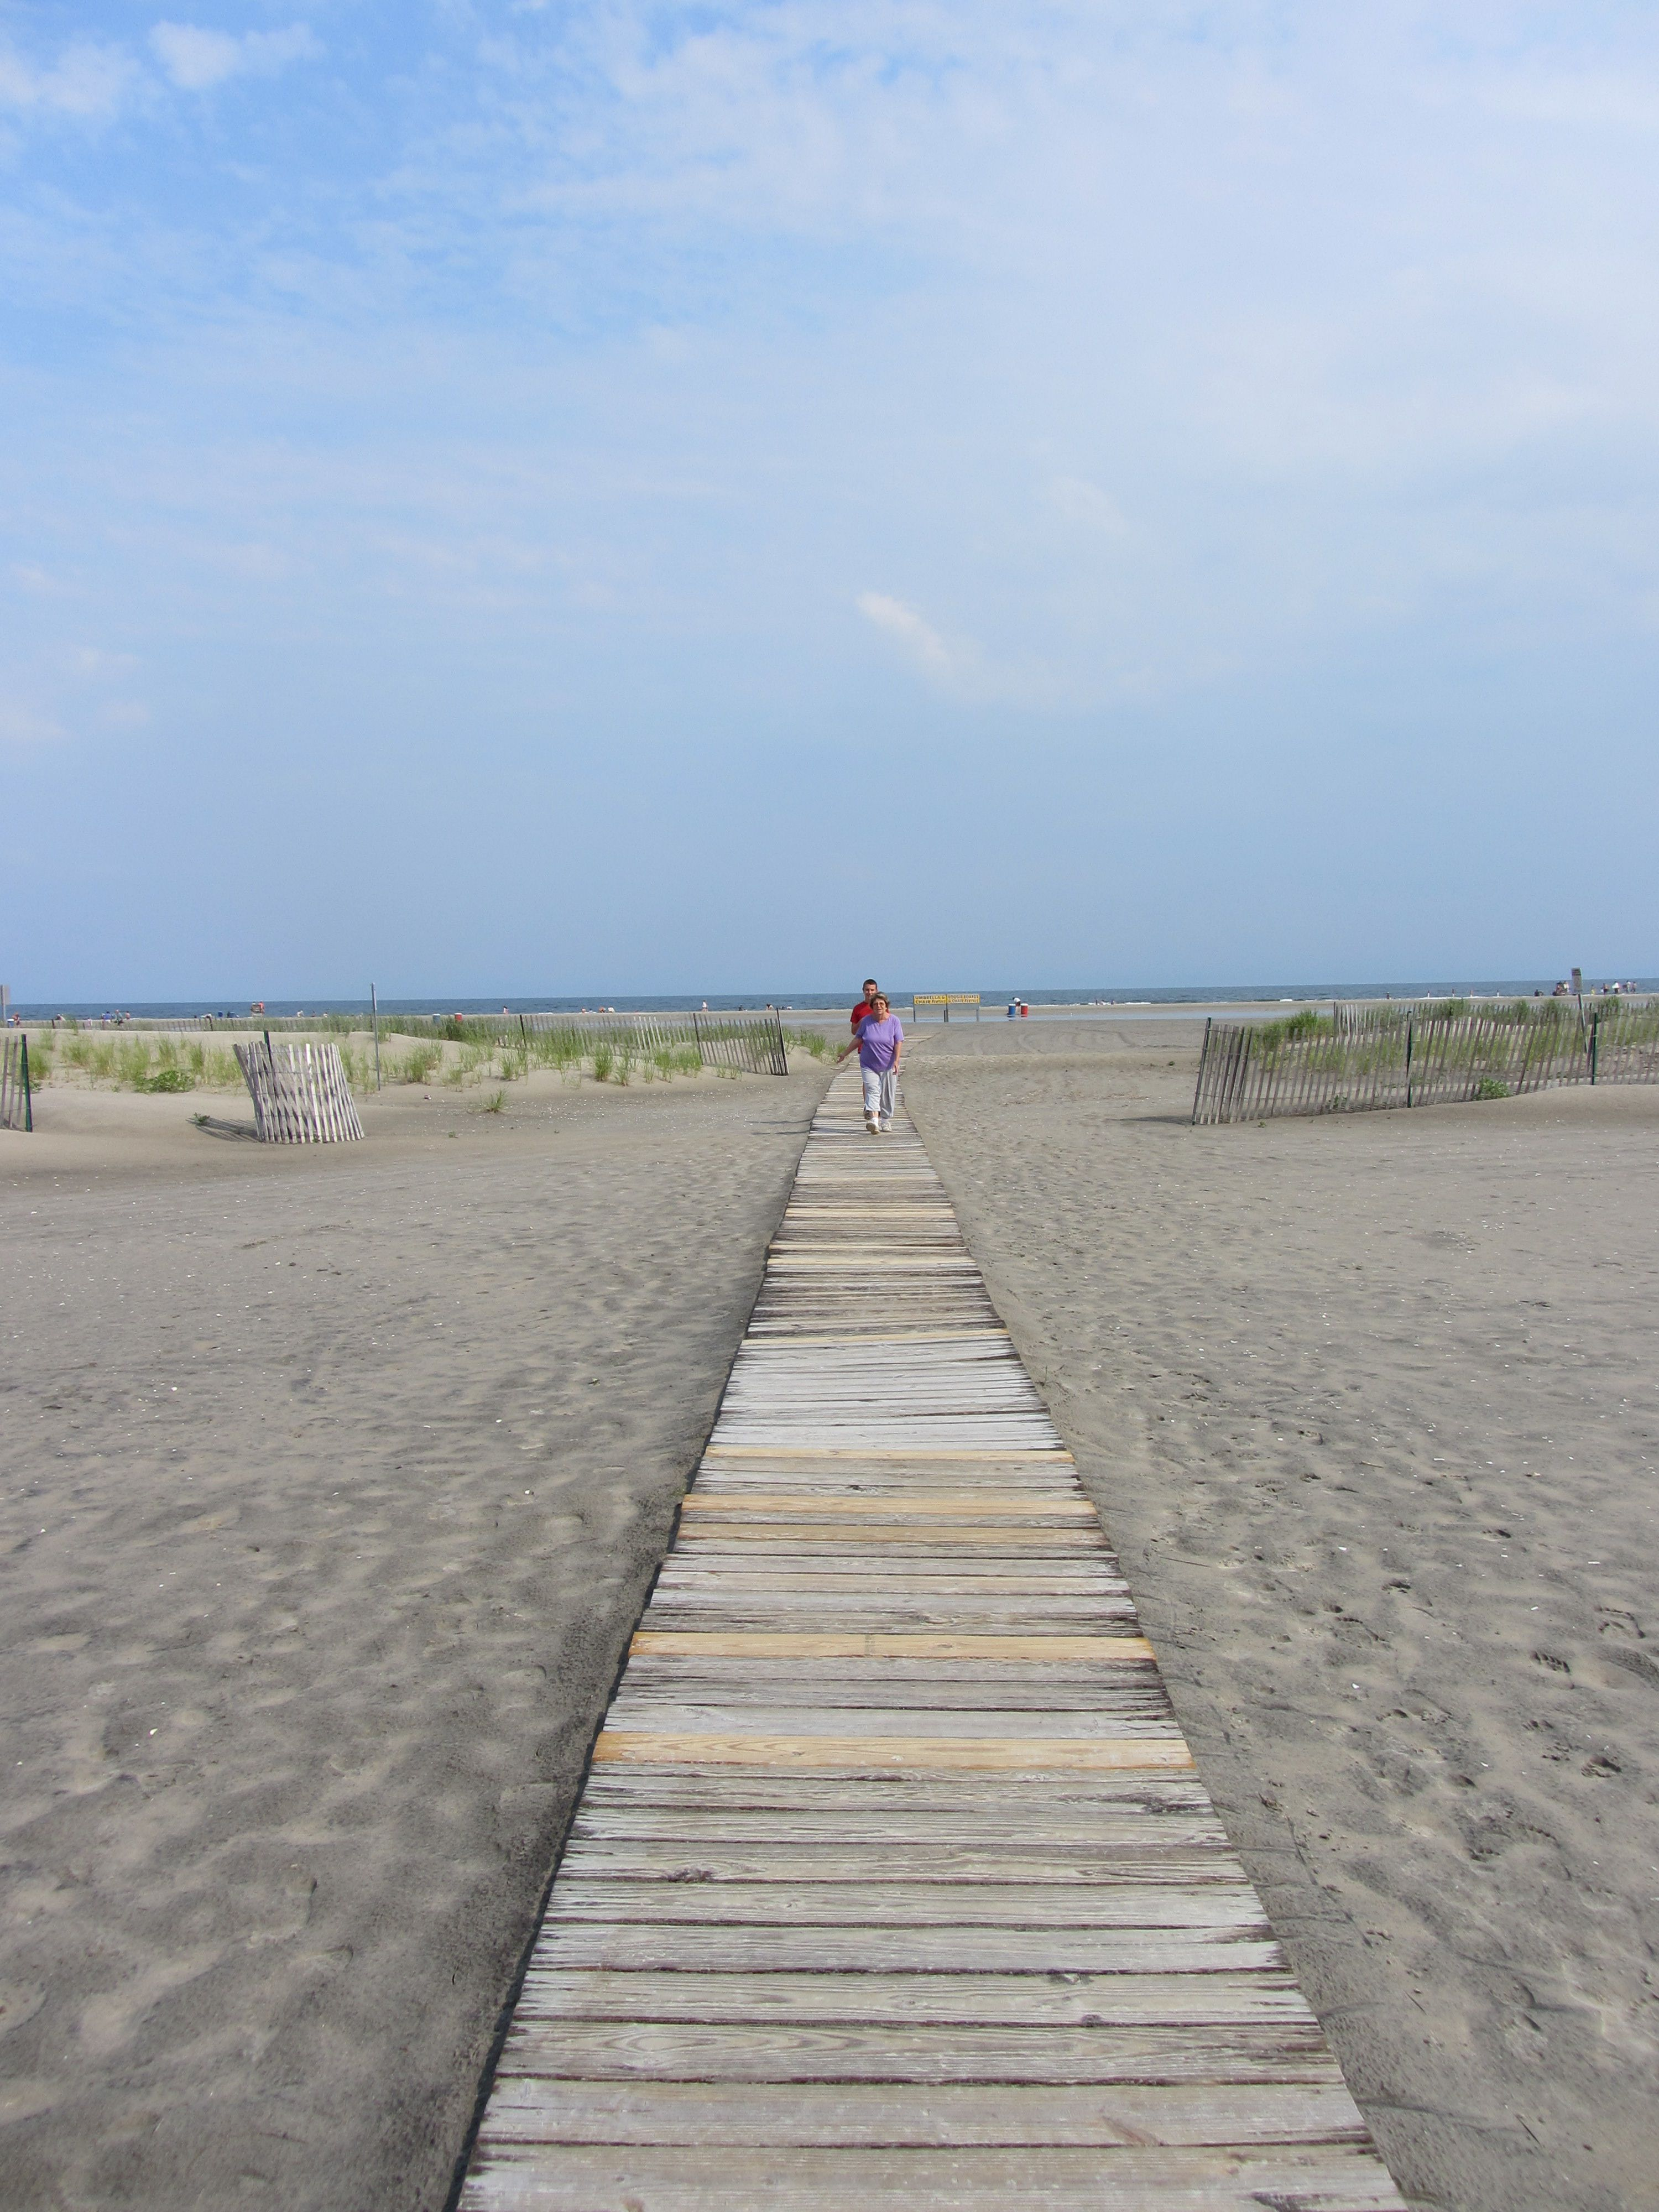 Wildwood Crest Beach Must Have Made That Long Walk Hundreds Of Times So Worth It